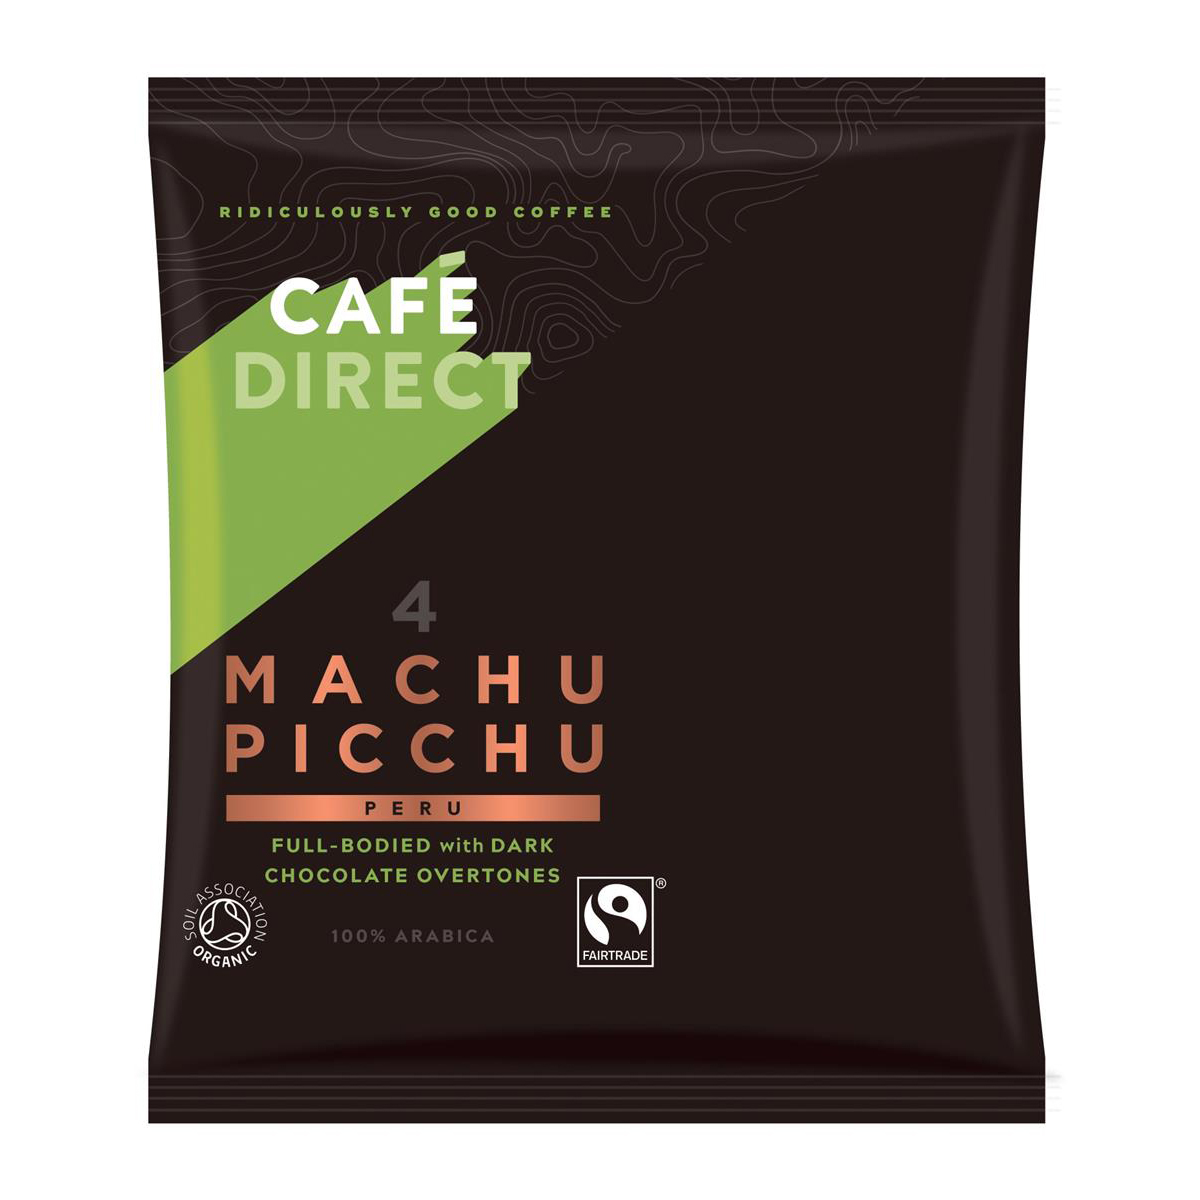 Cafe Direct Machu Pichu Peruvian Filter Coffee 60g Sachet Ref FCR1011 [Pack 45]